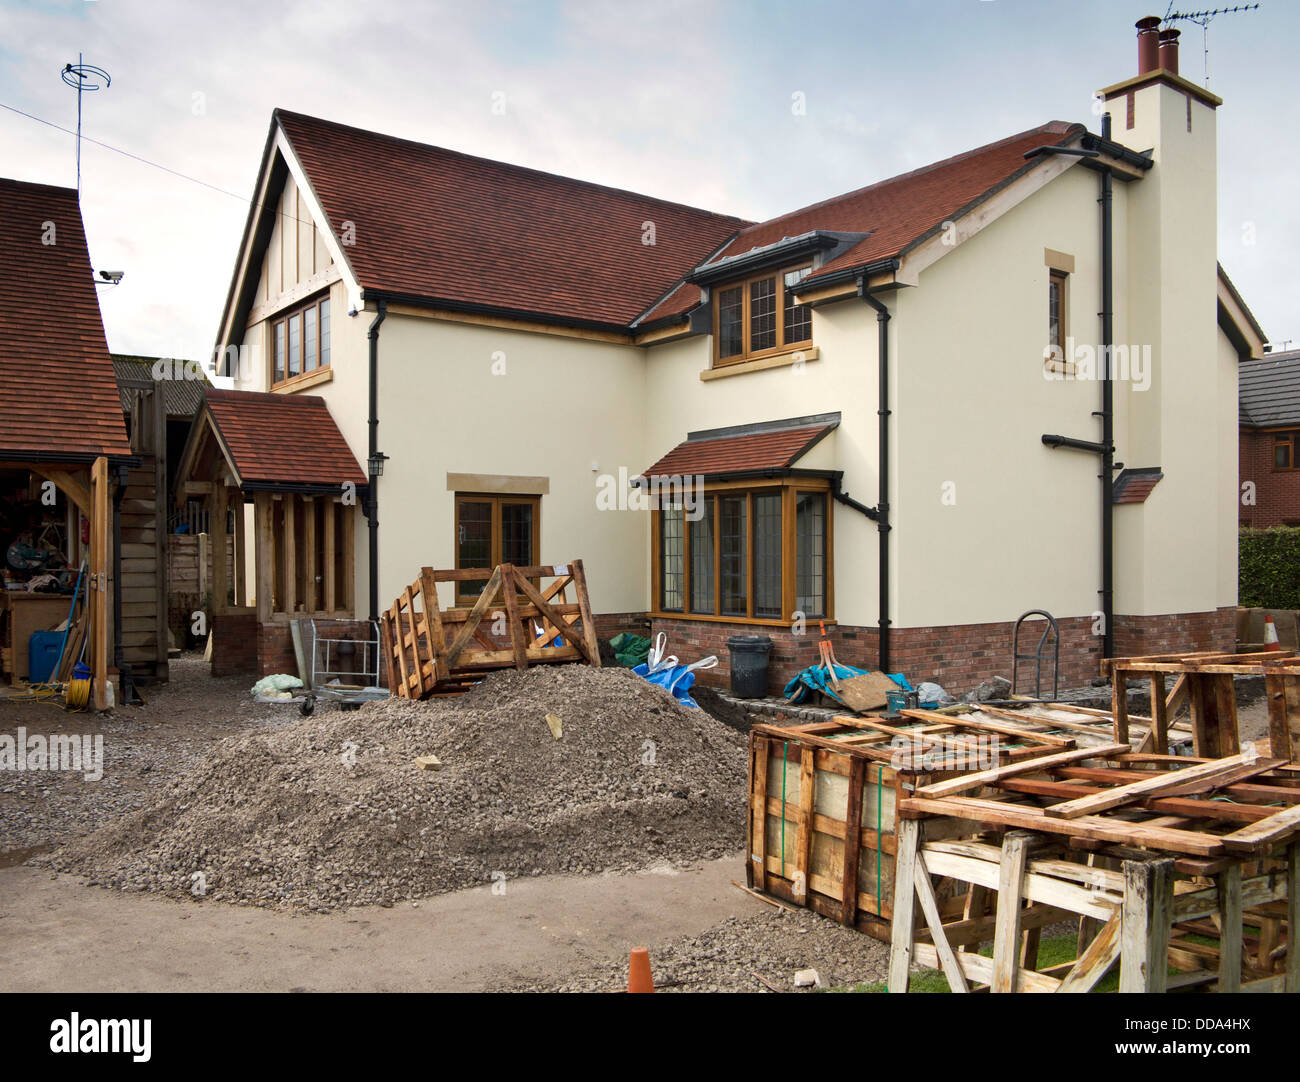 self building house, hard landscaping, pallets of sandstone paving slabs around edge of new-built property - Stock Image